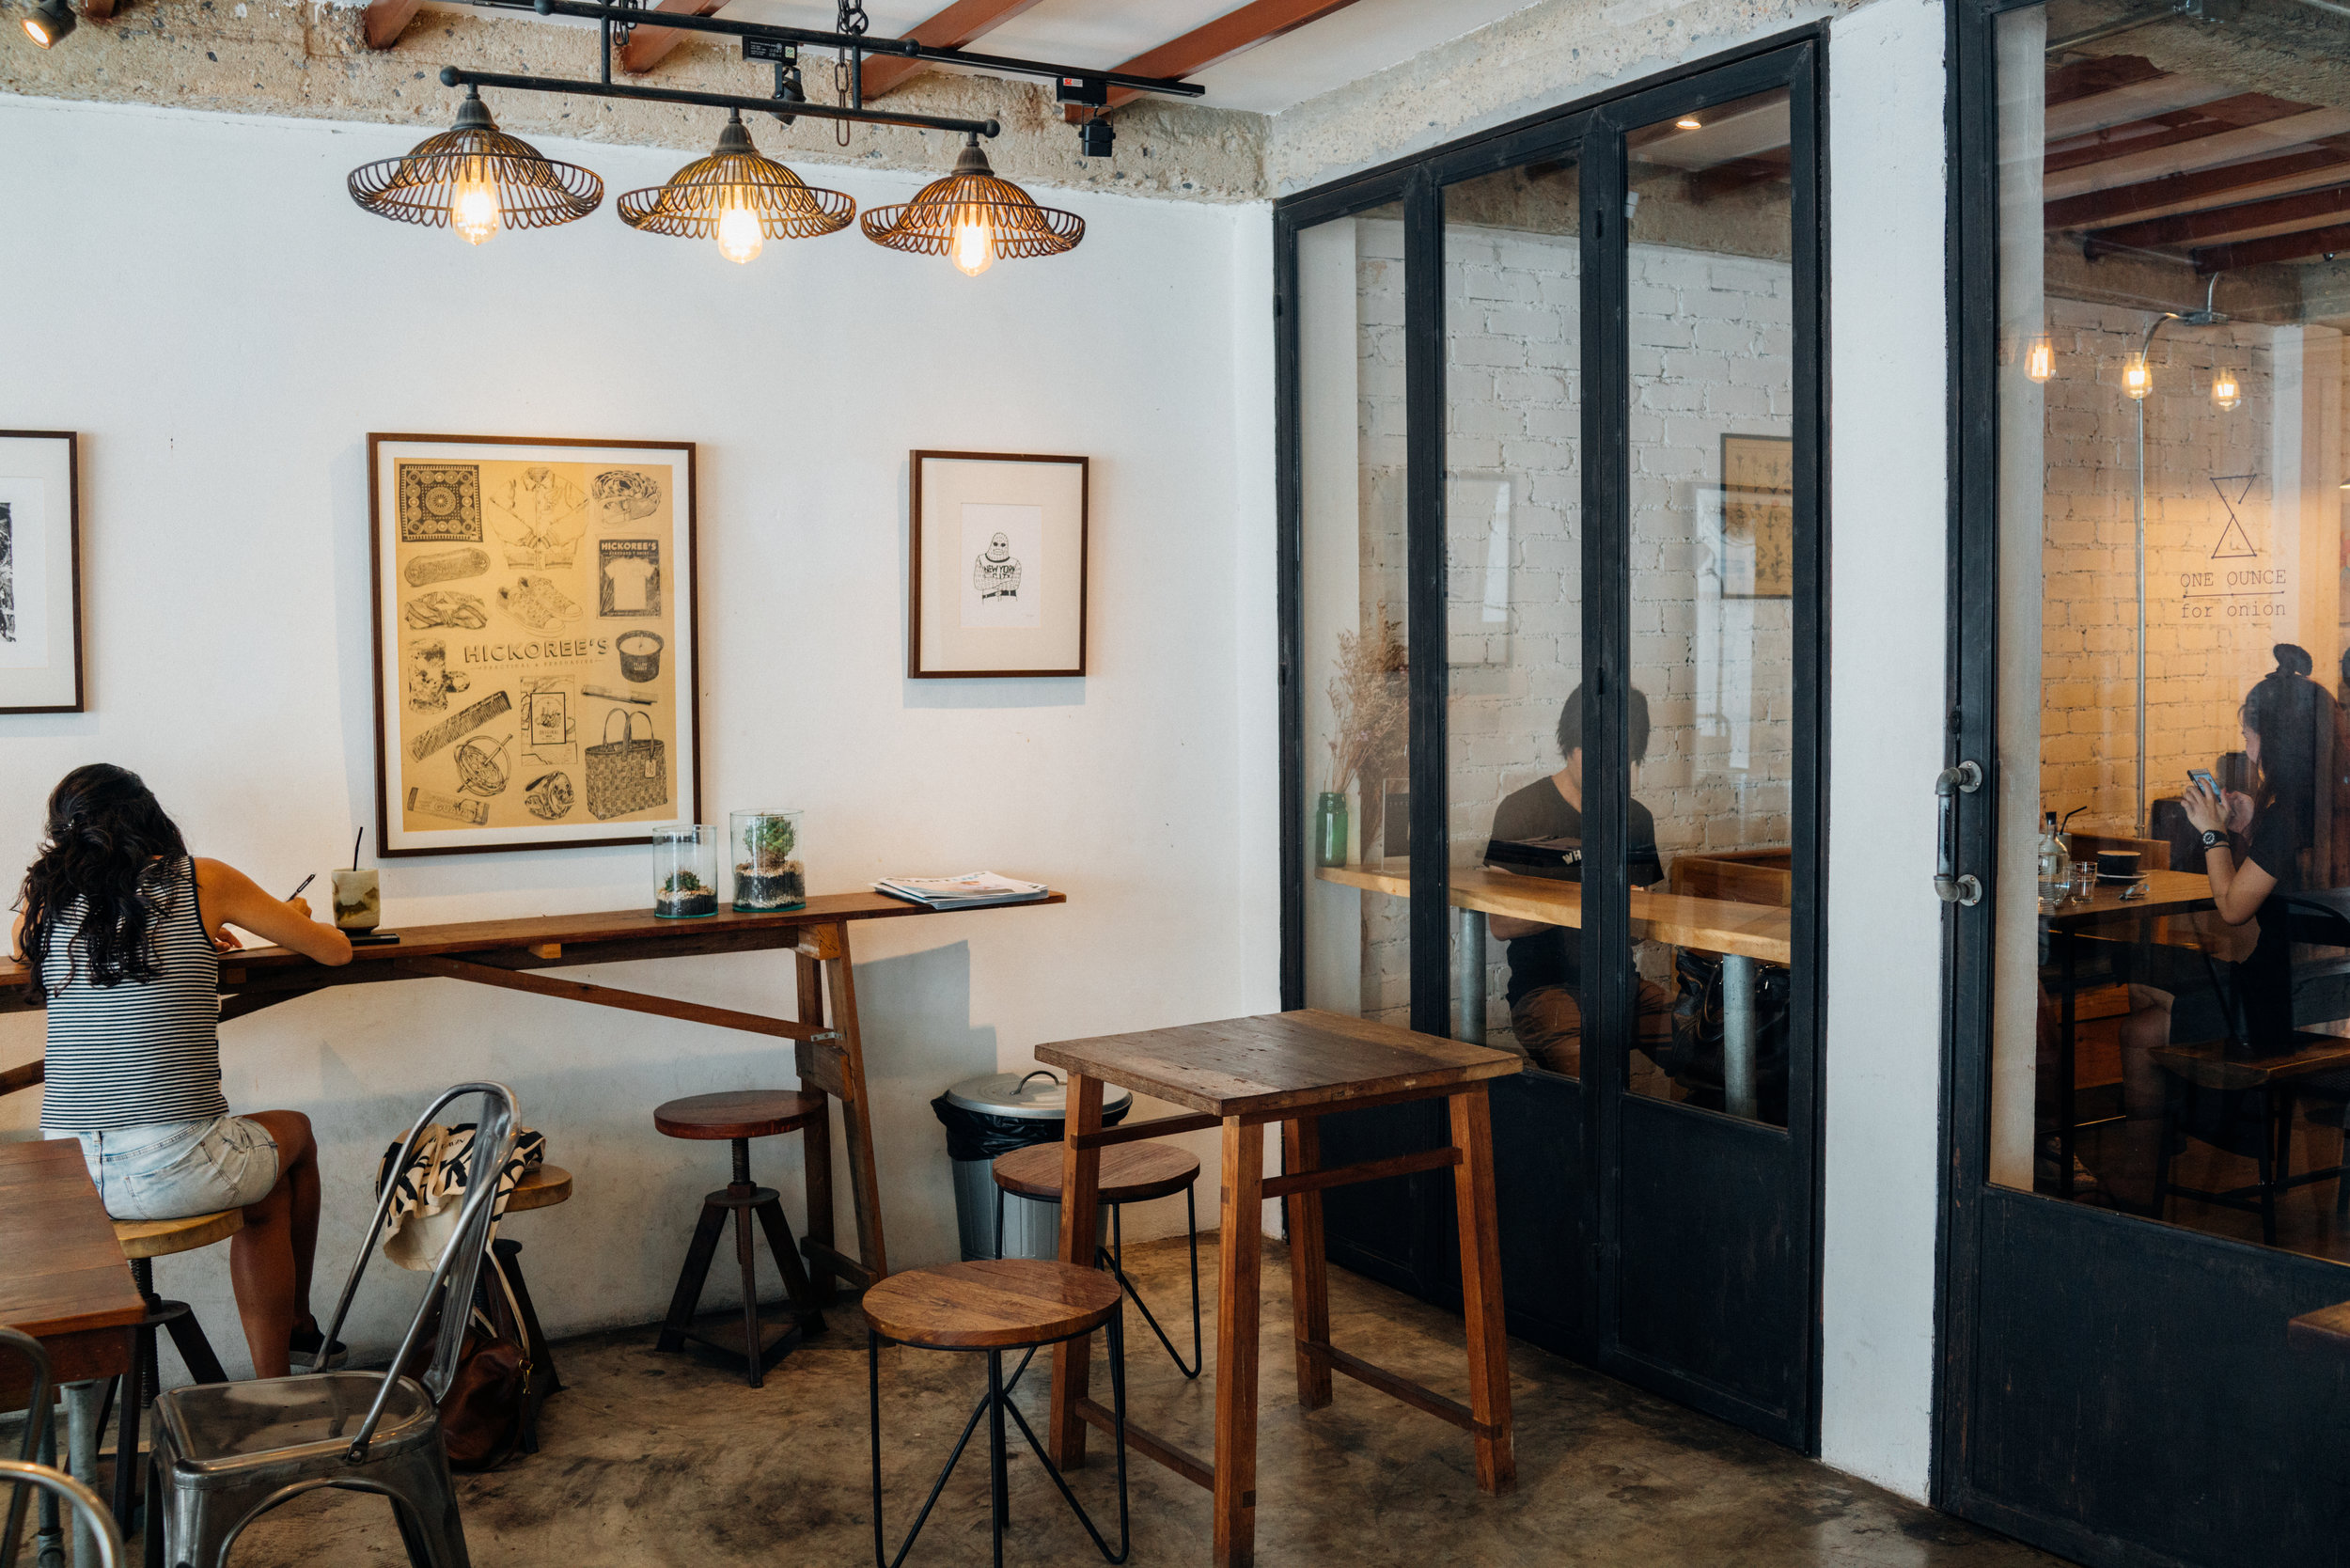 The exterior space at One Ounce for Onion in Bangkok